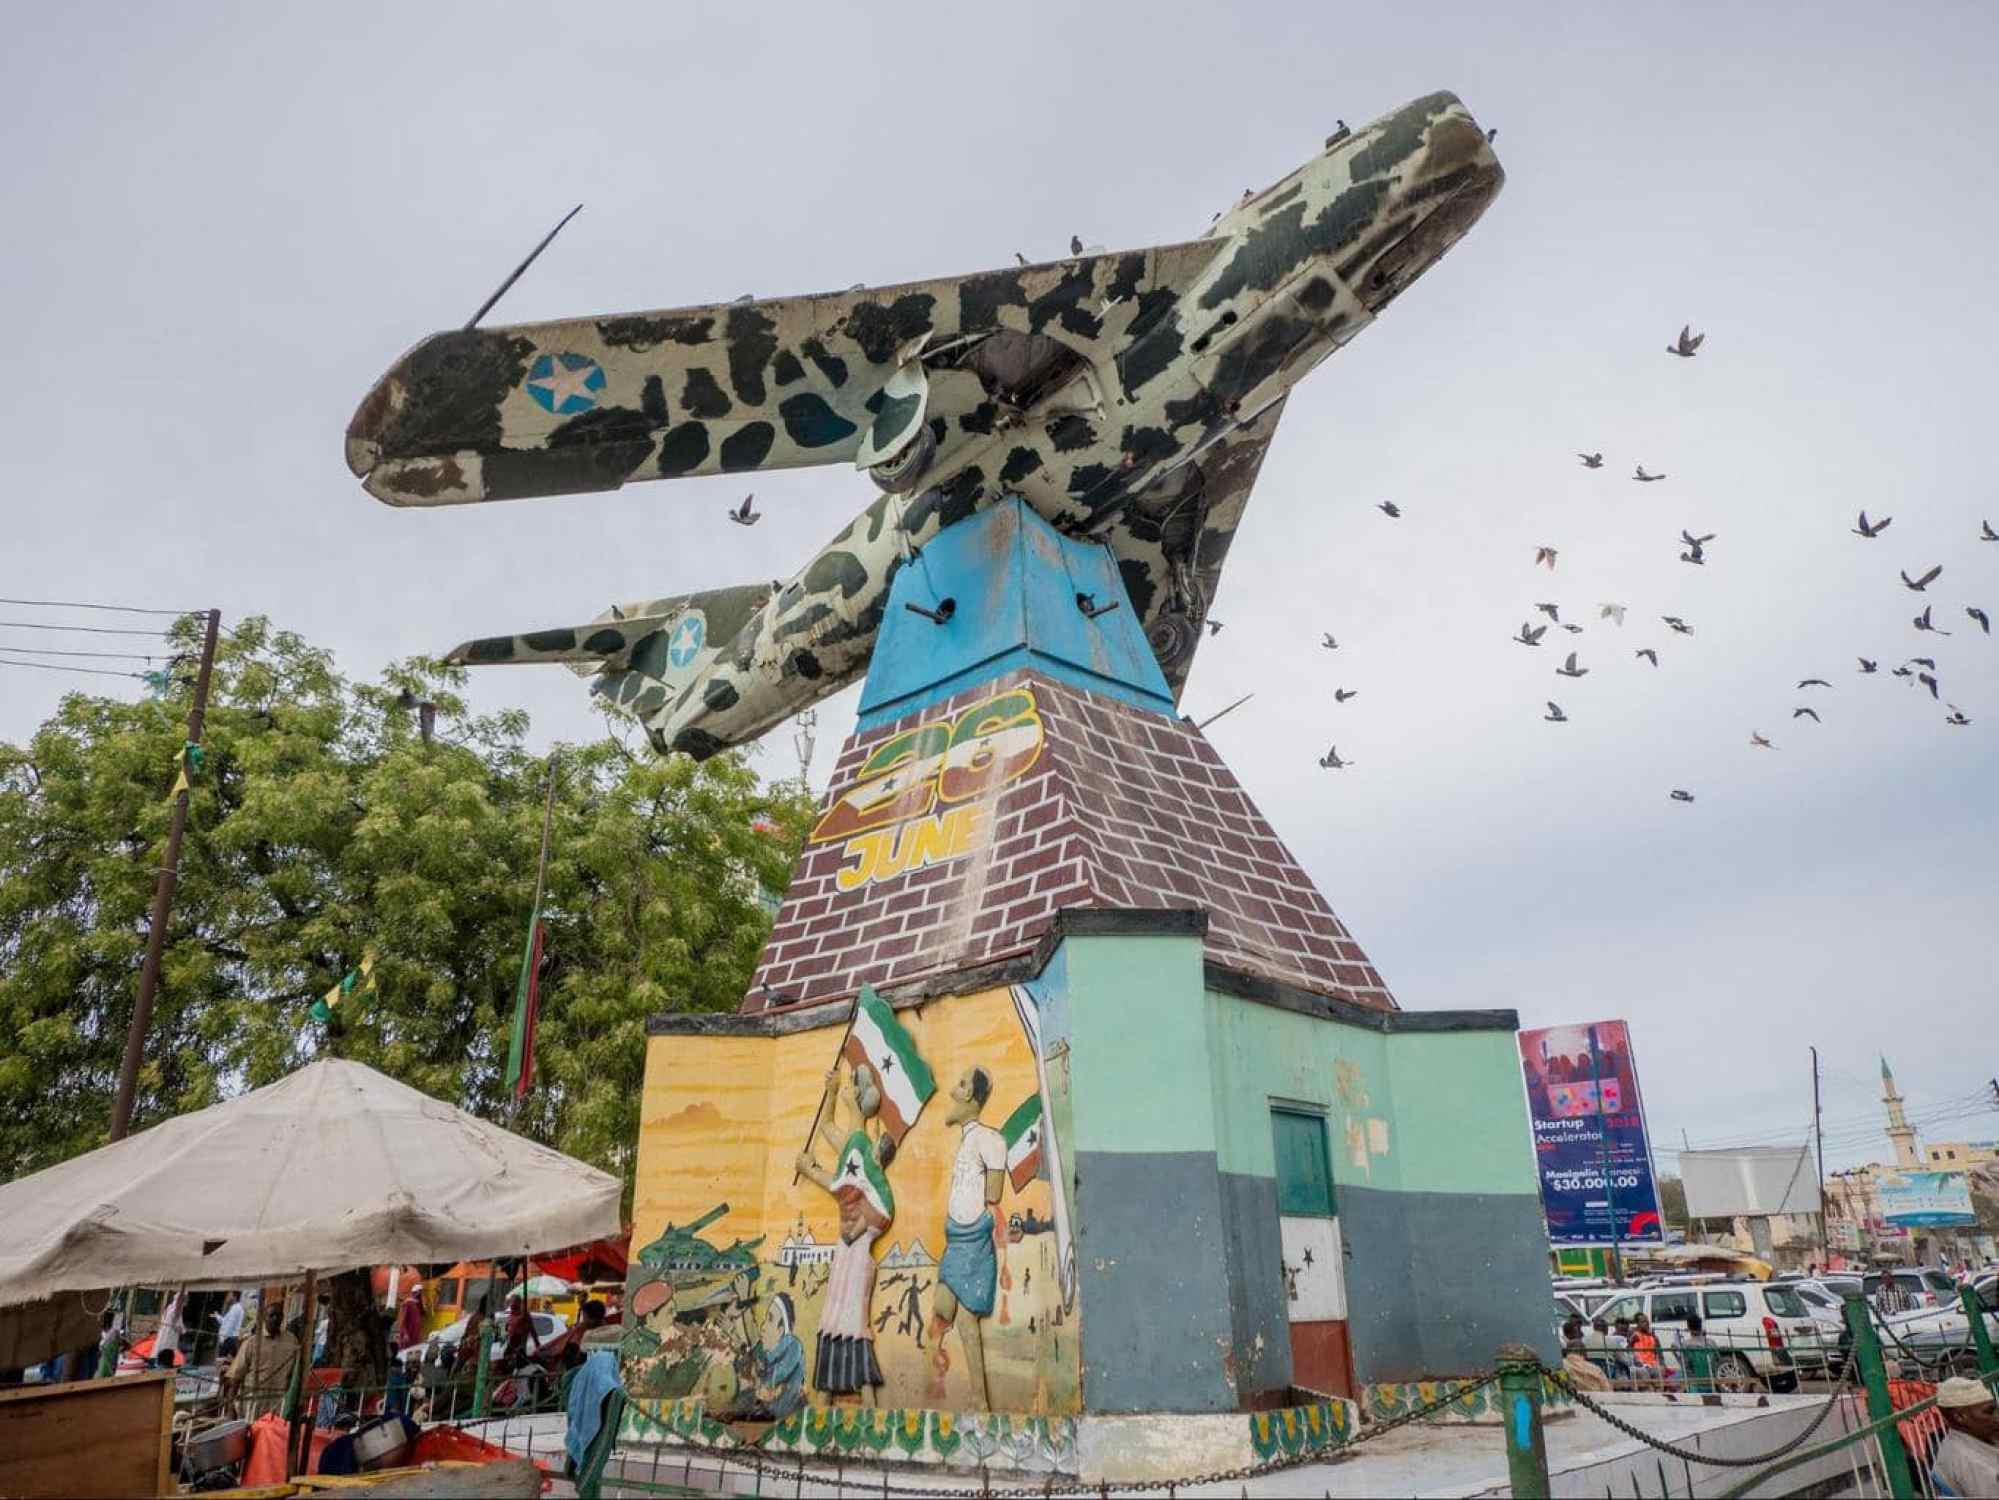 MiG Jet Fighter - War Memorial in Freedom Square in Hargeisa